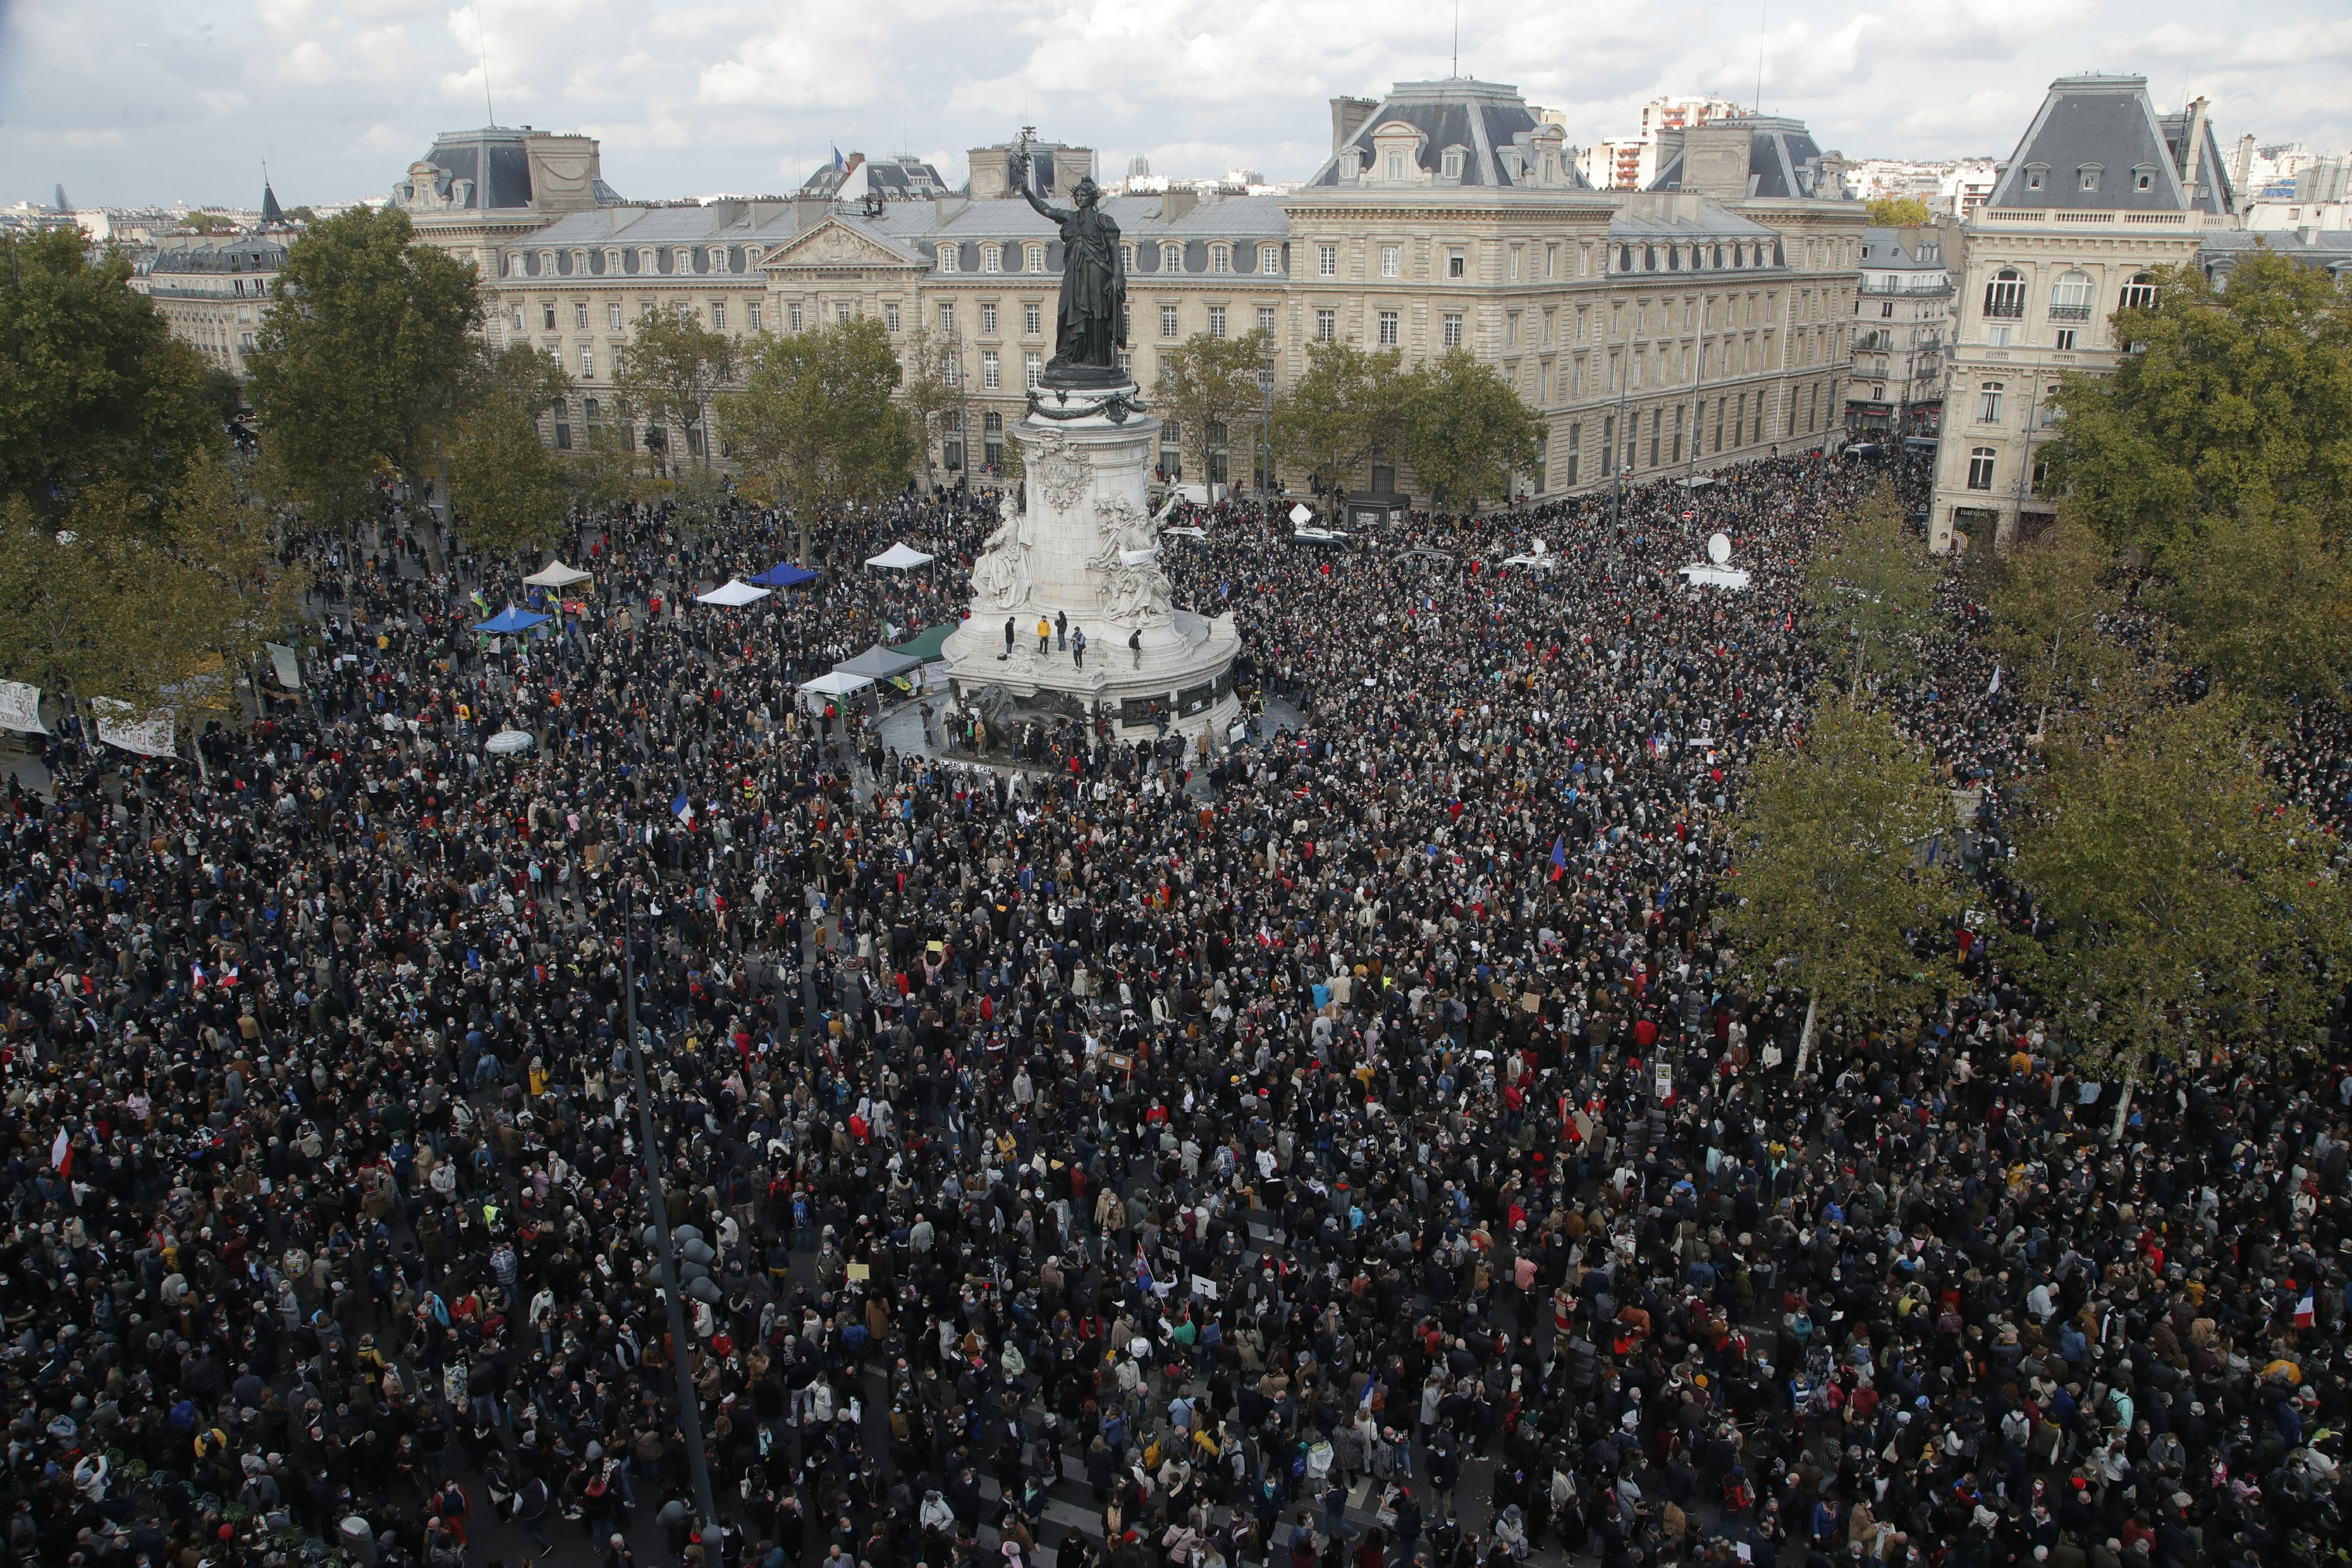 PARIS (AP) — France's prime minister joined demonstrators on Sunday who rallied together across the country in tribute to a history teacher who was beheaded near Paris after discussing caricatures...